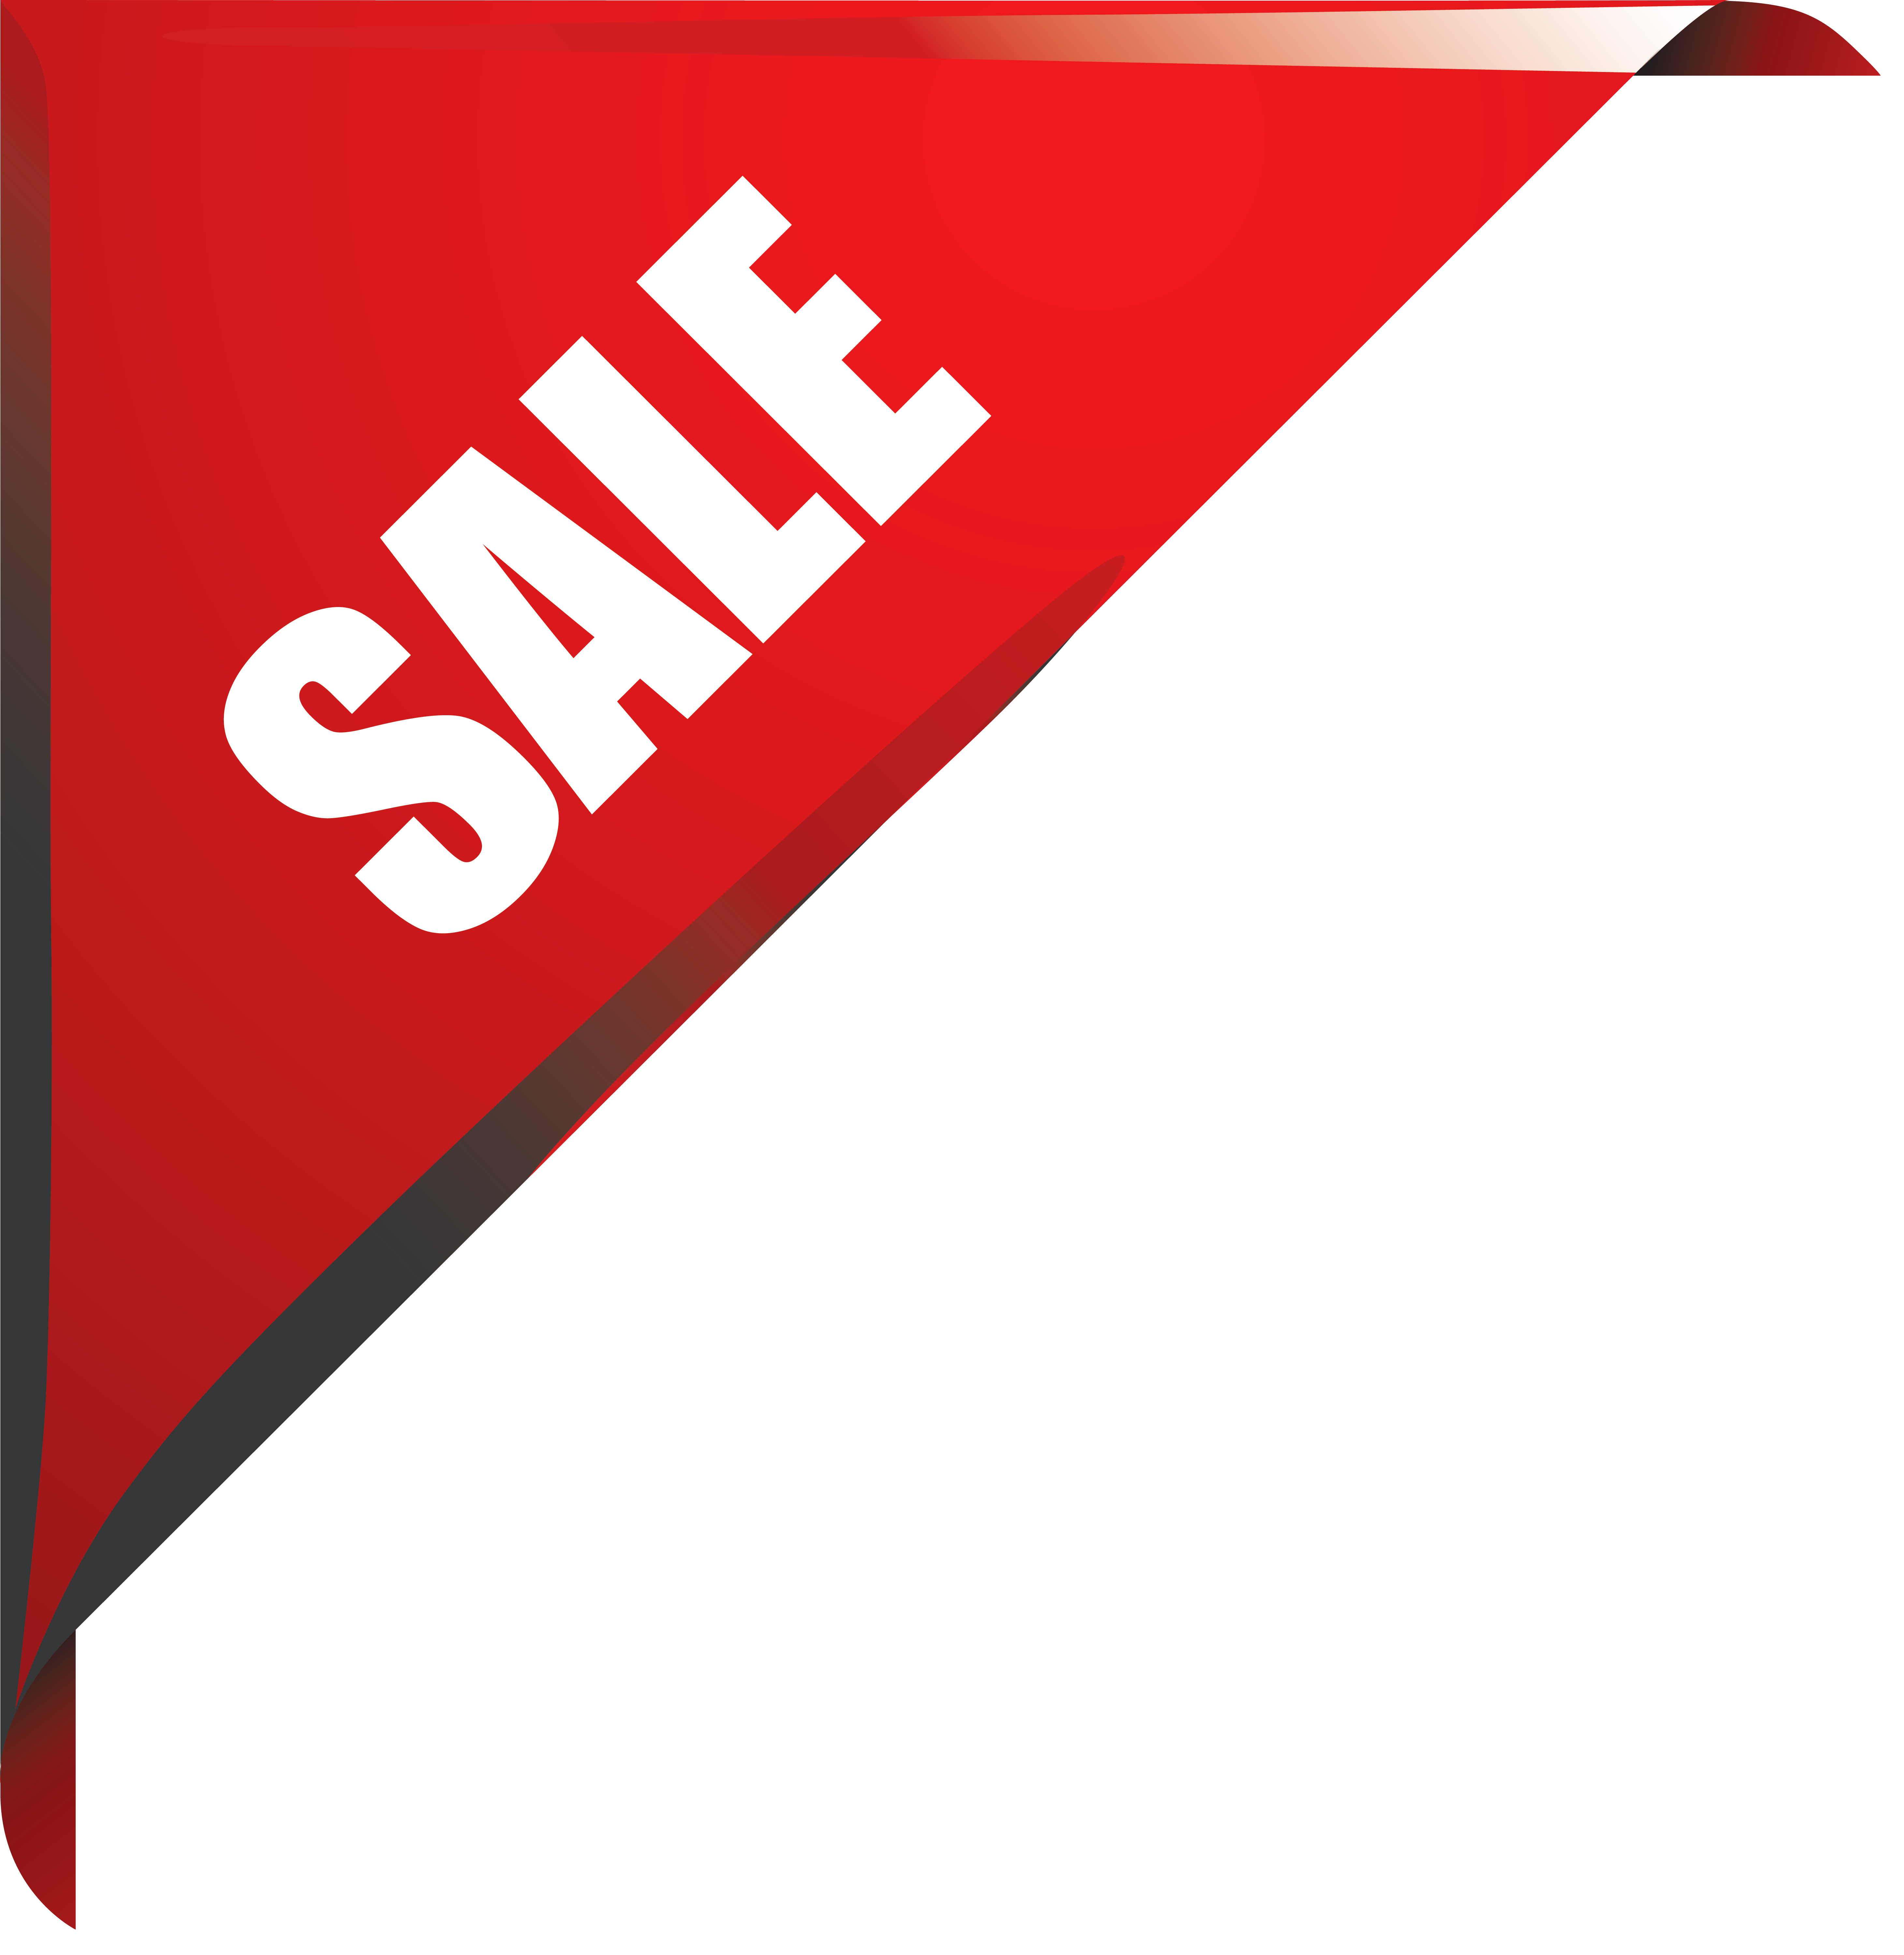 Sale Corner Sticker Png Clipart Image Gallery Yopriceville High Quality Images And Transparent Png Free Clipart Free Clip Art Clip Art Clipart Images